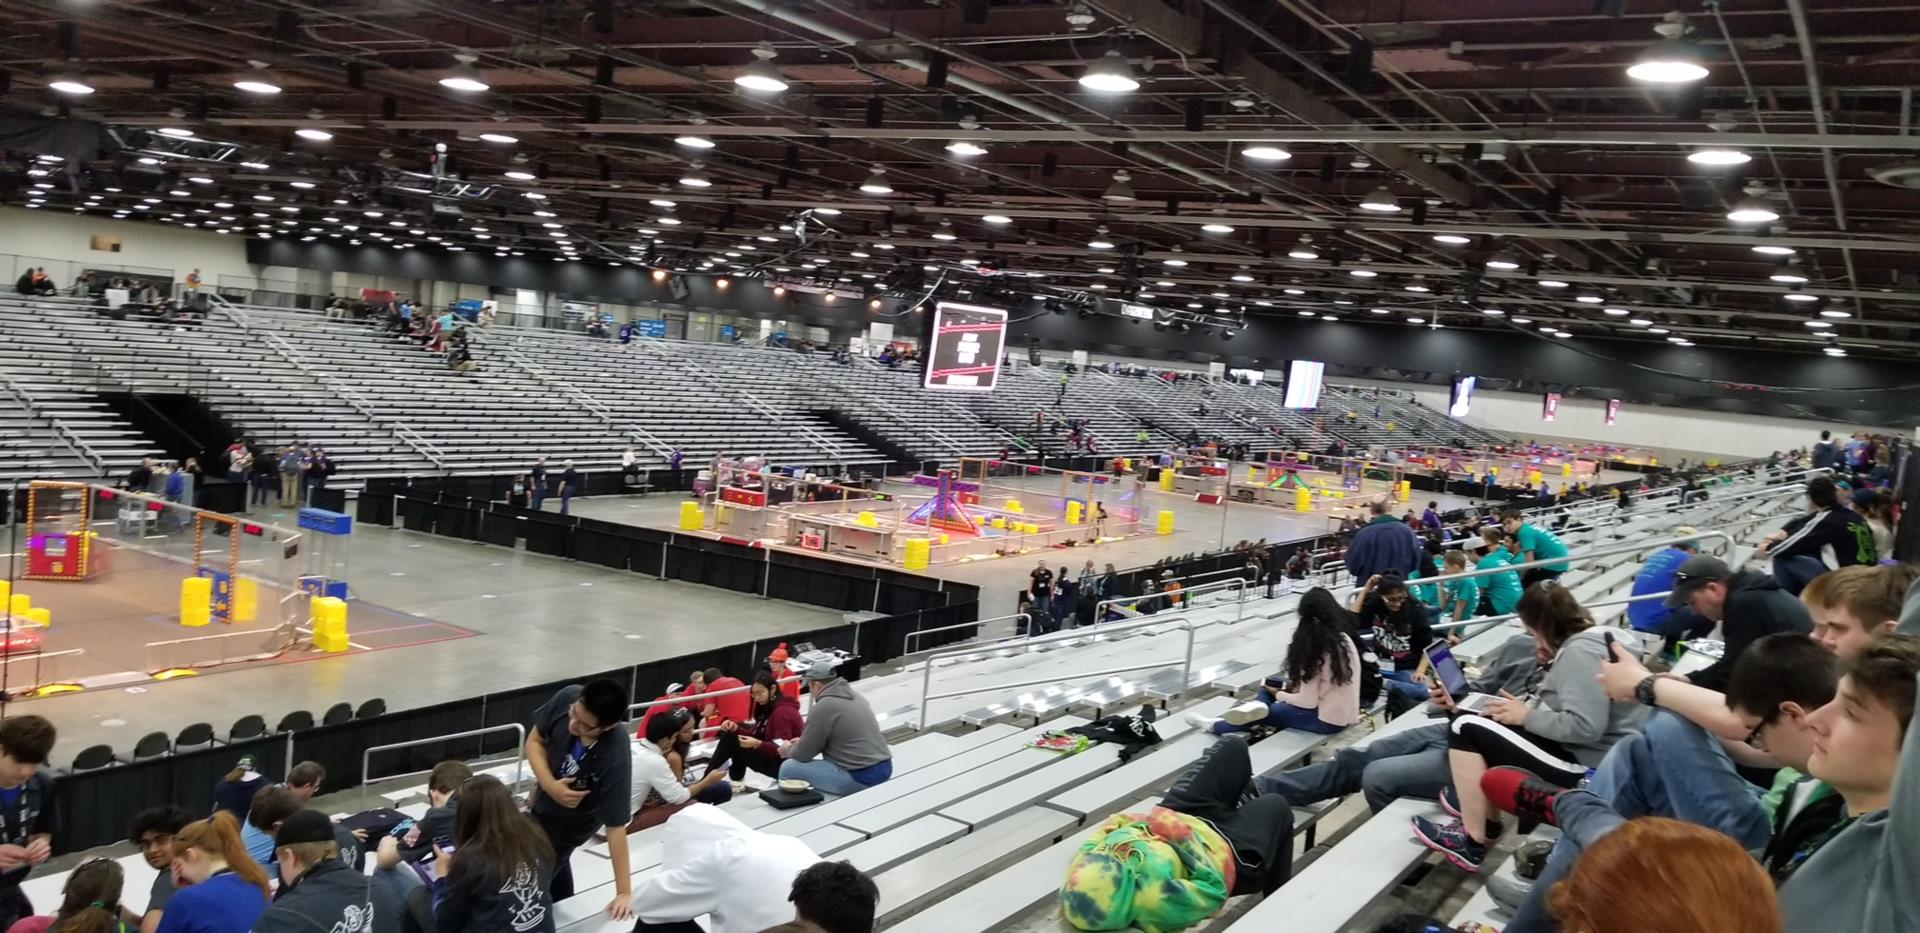 the inside of an arena is seen